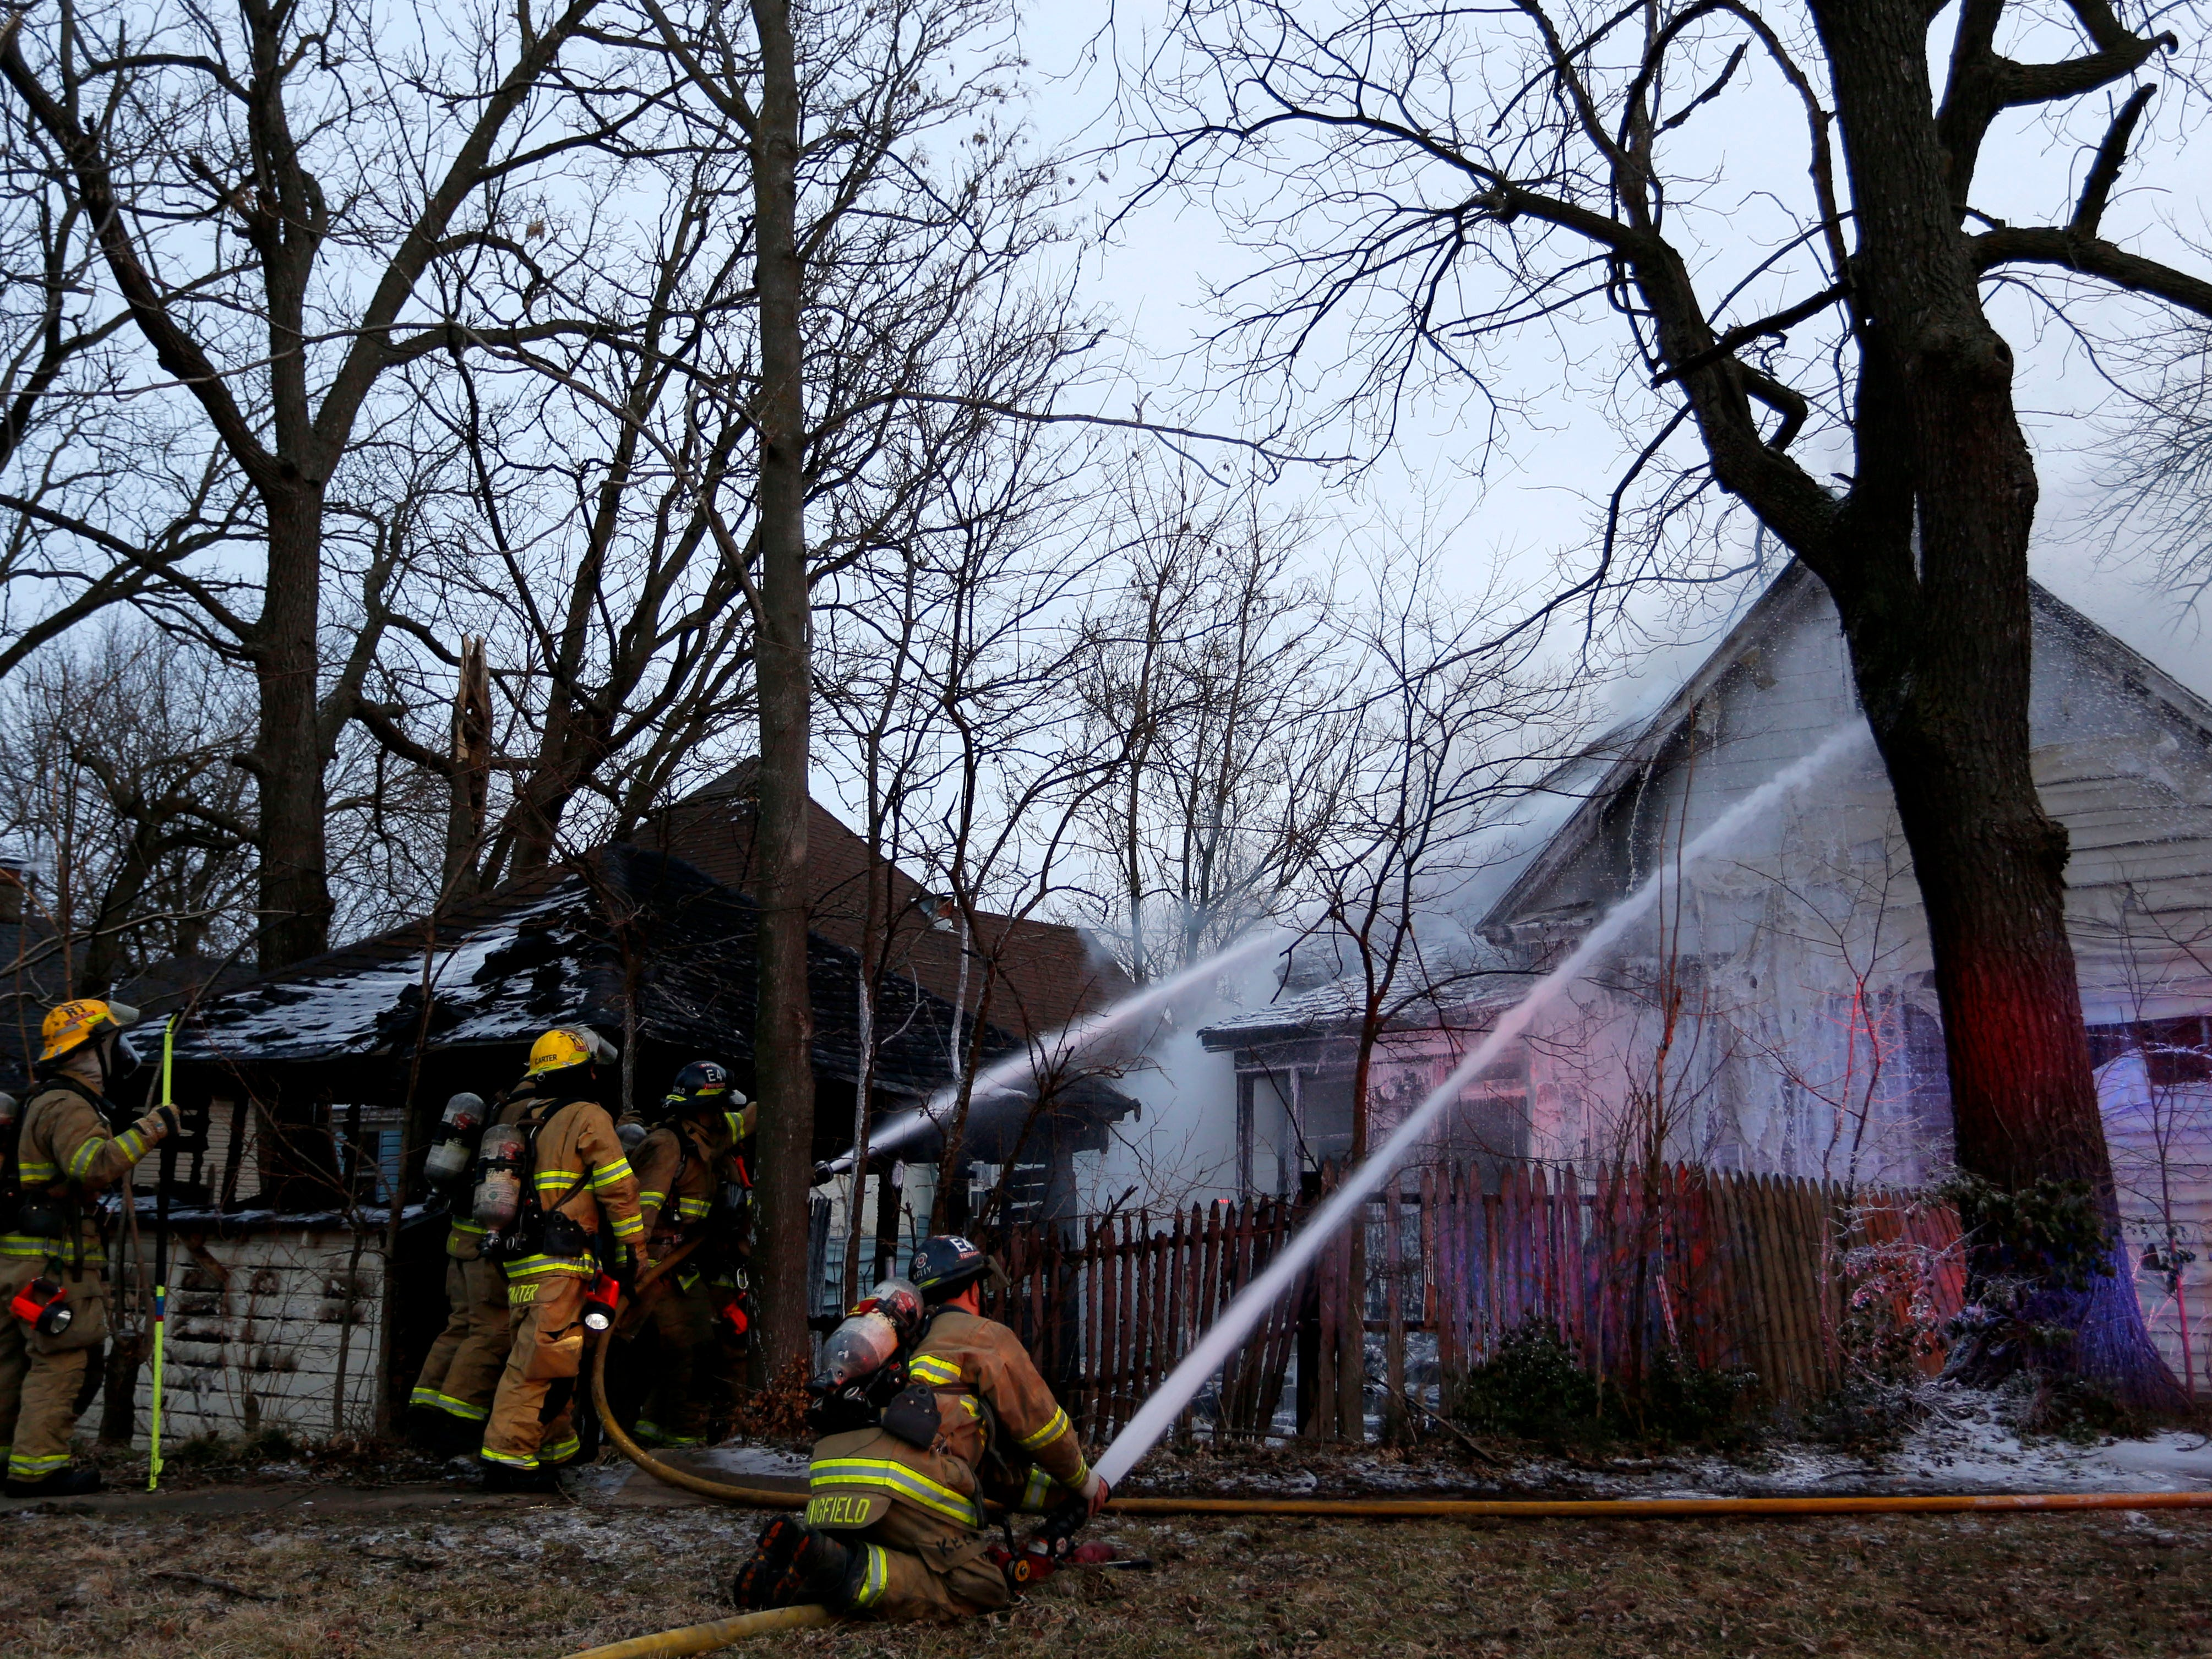 Firefighters battle a house fire at the corner of Commercial and Division Streets on Monday, Feb. 18, 2019. A homicide was reported at the house on Feb. 1.